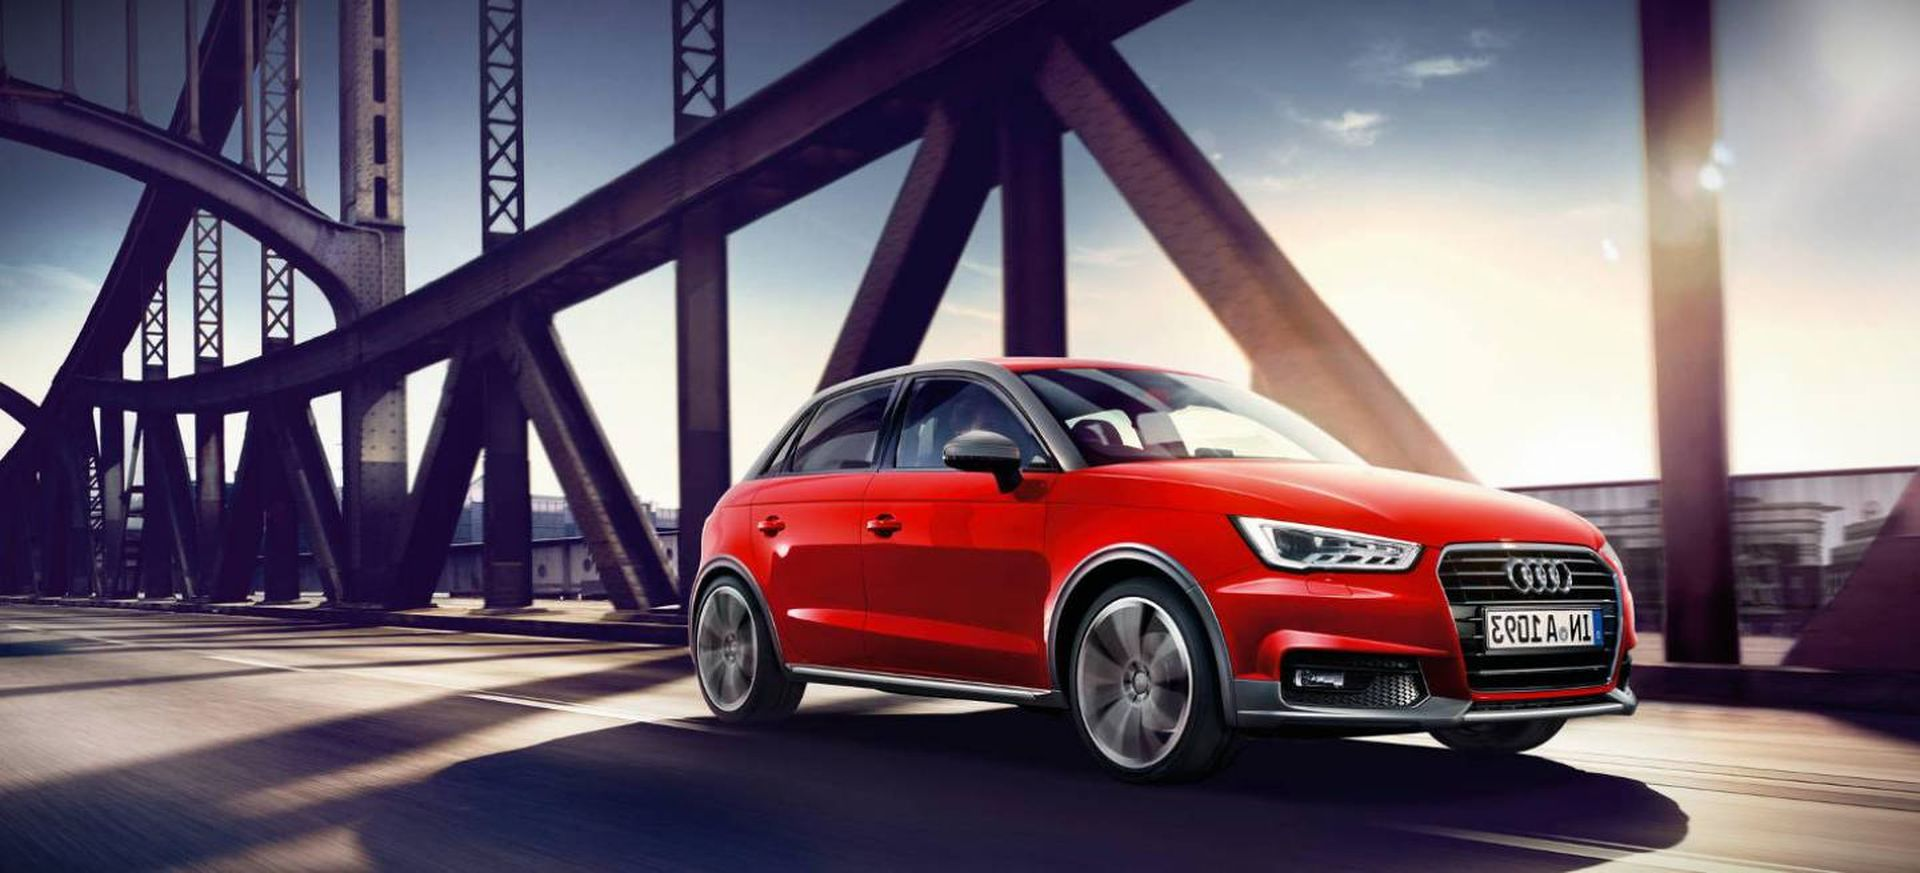 2018 audi a1 release date new suv price new suv price. Black Bedroom Furniture Sets. Home Design Ideas